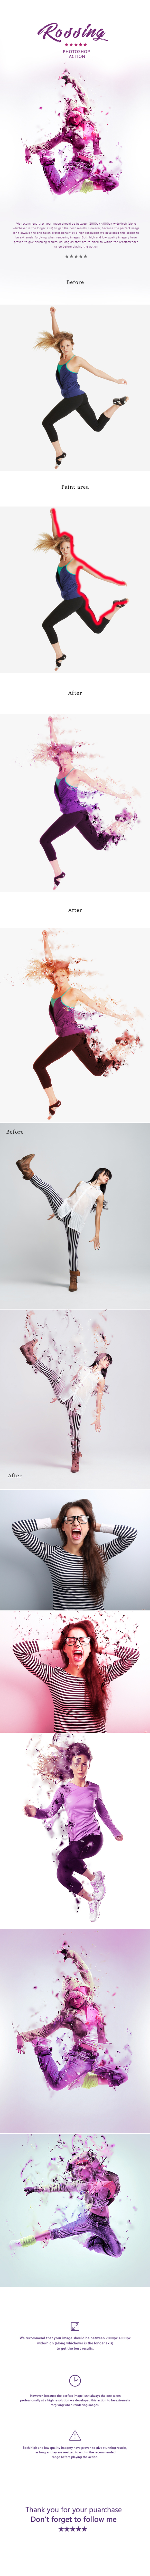 GraphicRiver Rossing Photoshop Action 20499237